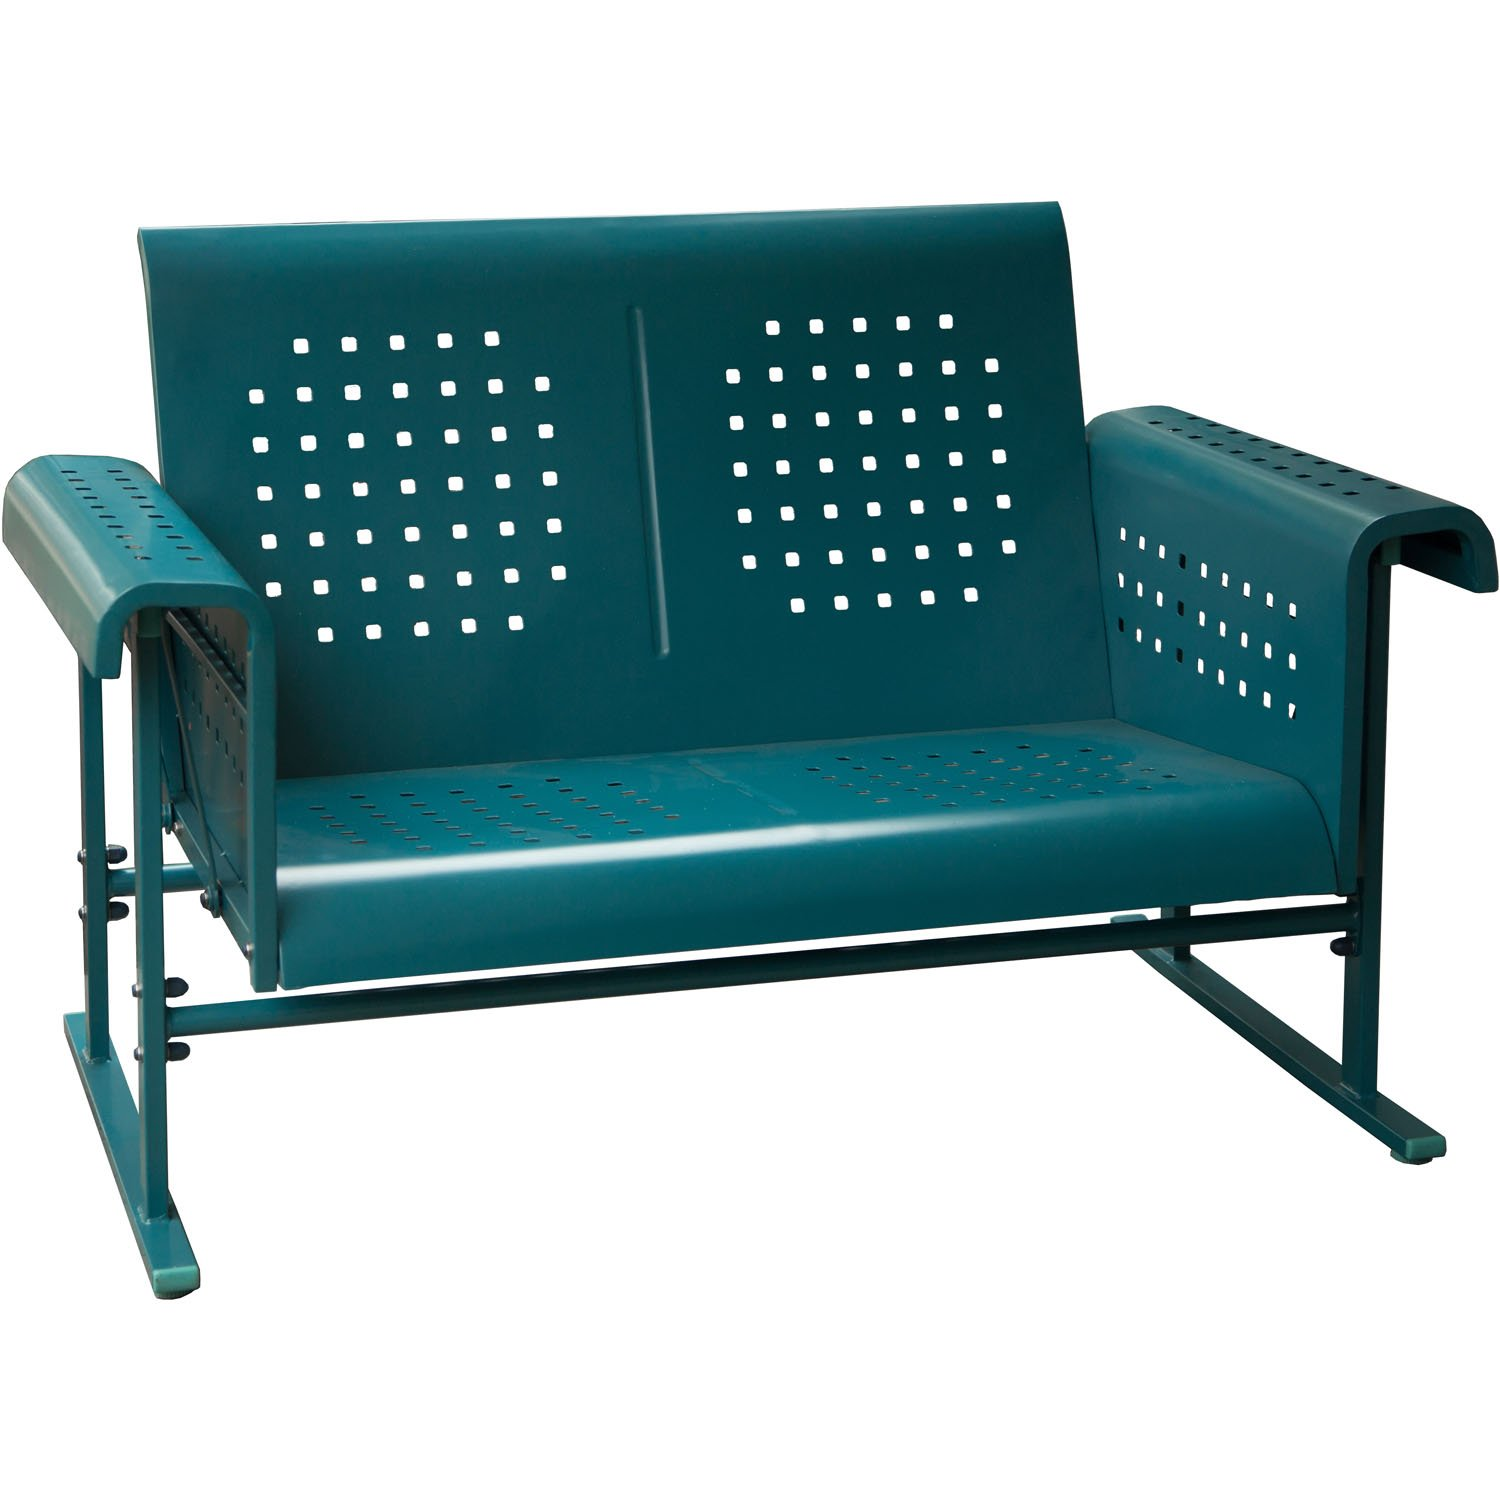 Hanover Retro Outdoor Glide-Action Steel Loveseat